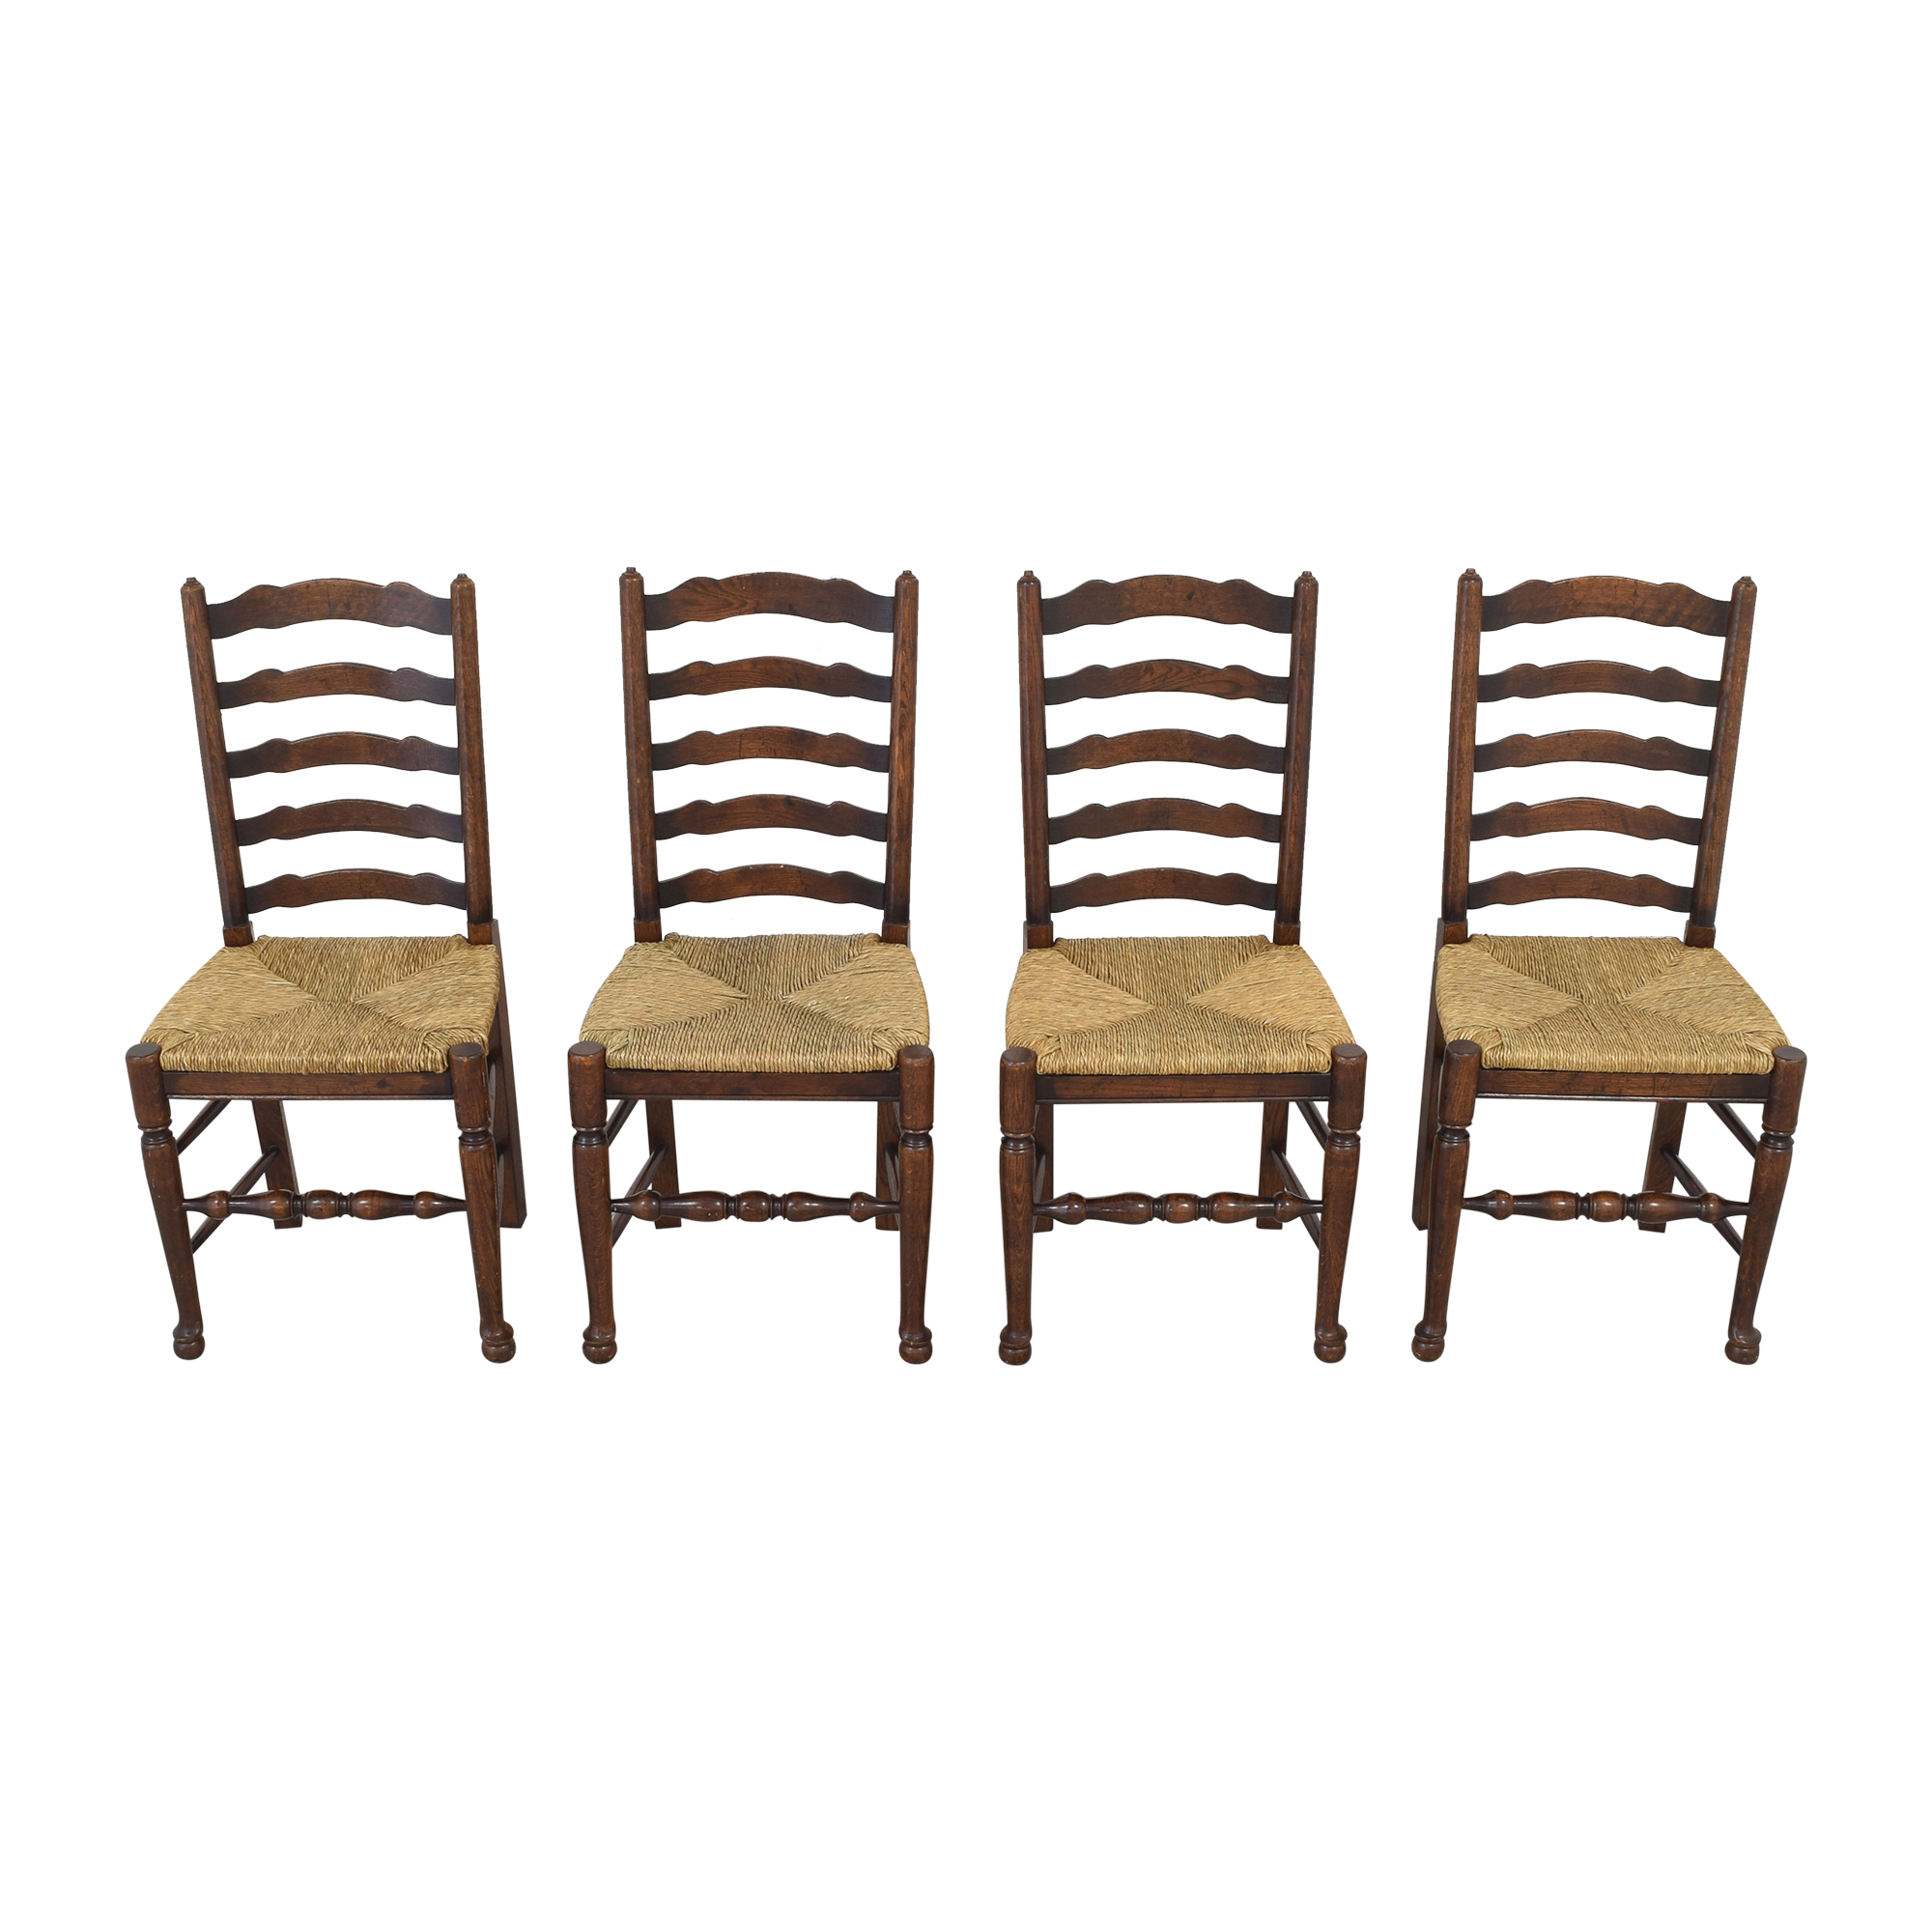 Pottery Barn Pottery Barn Ladder Back Dining Chairs pa